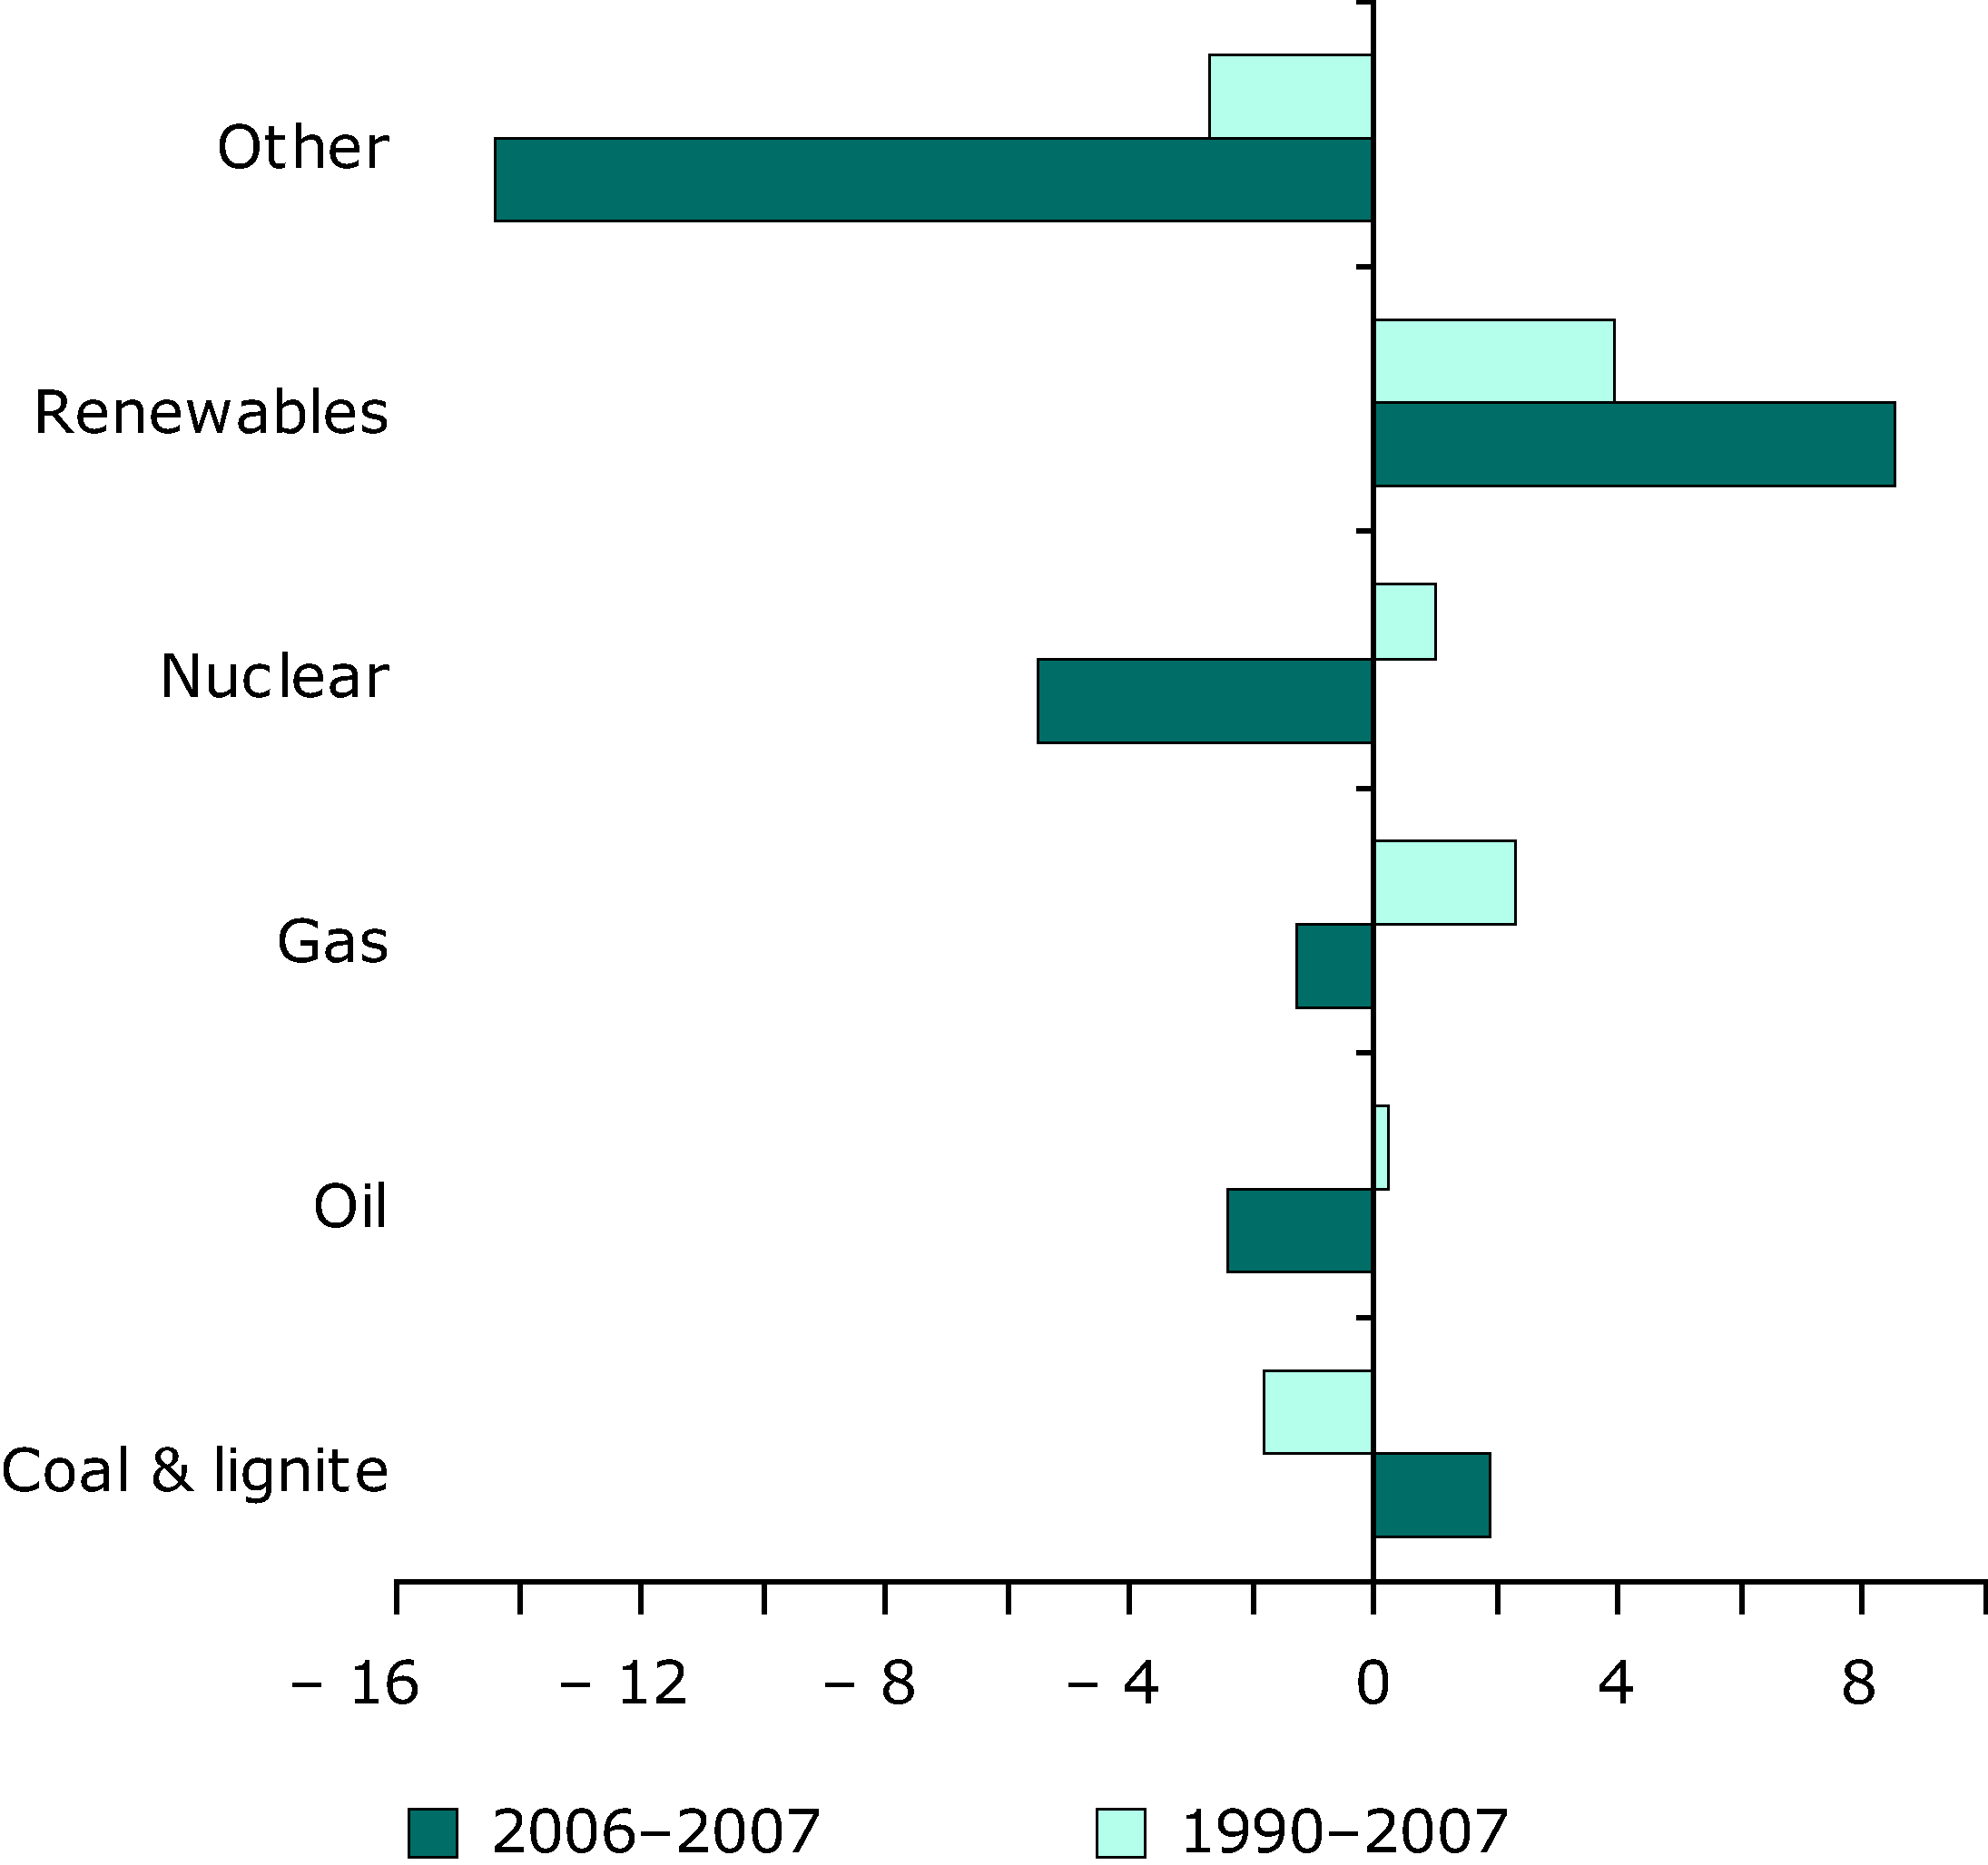 Average annual growth rates for different fuels in the EU-27, 1990-2007 and 2006-2007